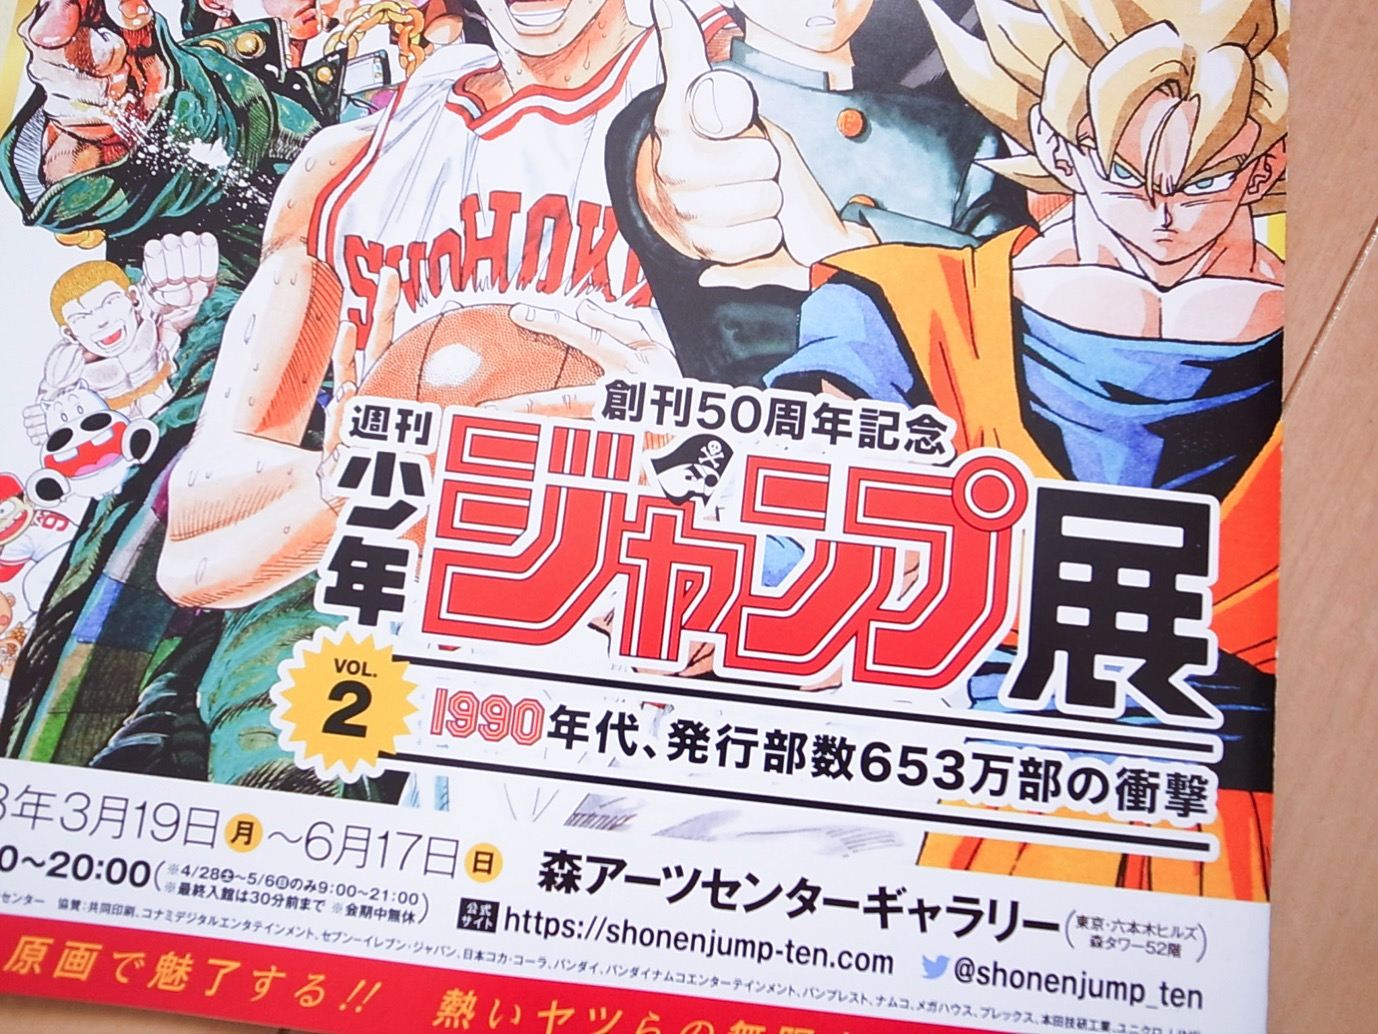 Shonenjump ten vol2 2